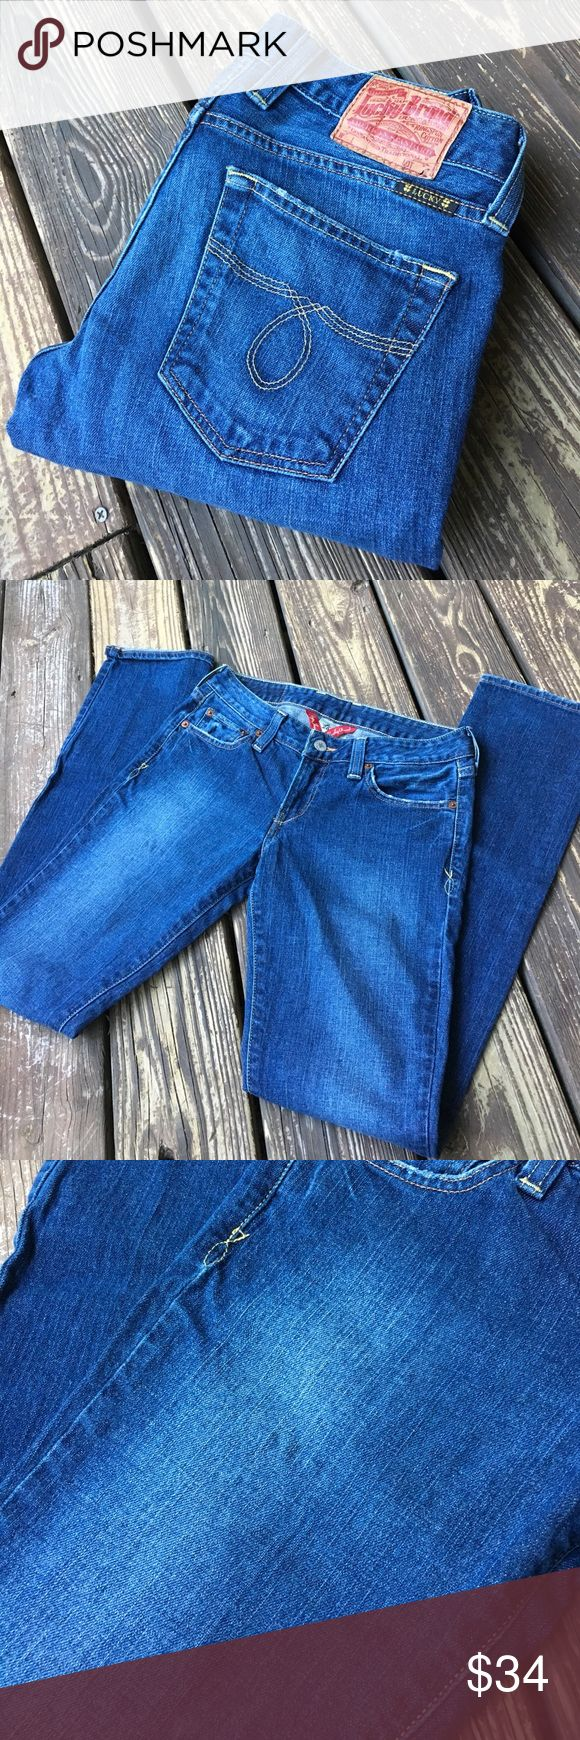 Luck Brand Lola Straight Leg Jeans Great pair of straight leg jeans. 99% cotton 1% spandex.  Has two small stains as shown in photo.  Does not really take away from the jeans.  Size 2.  waist measured flat 14 1/2 inches, rise 7 inches, inseam 33 inches.  PT307 Lucky Brand Jeans Straight Leg